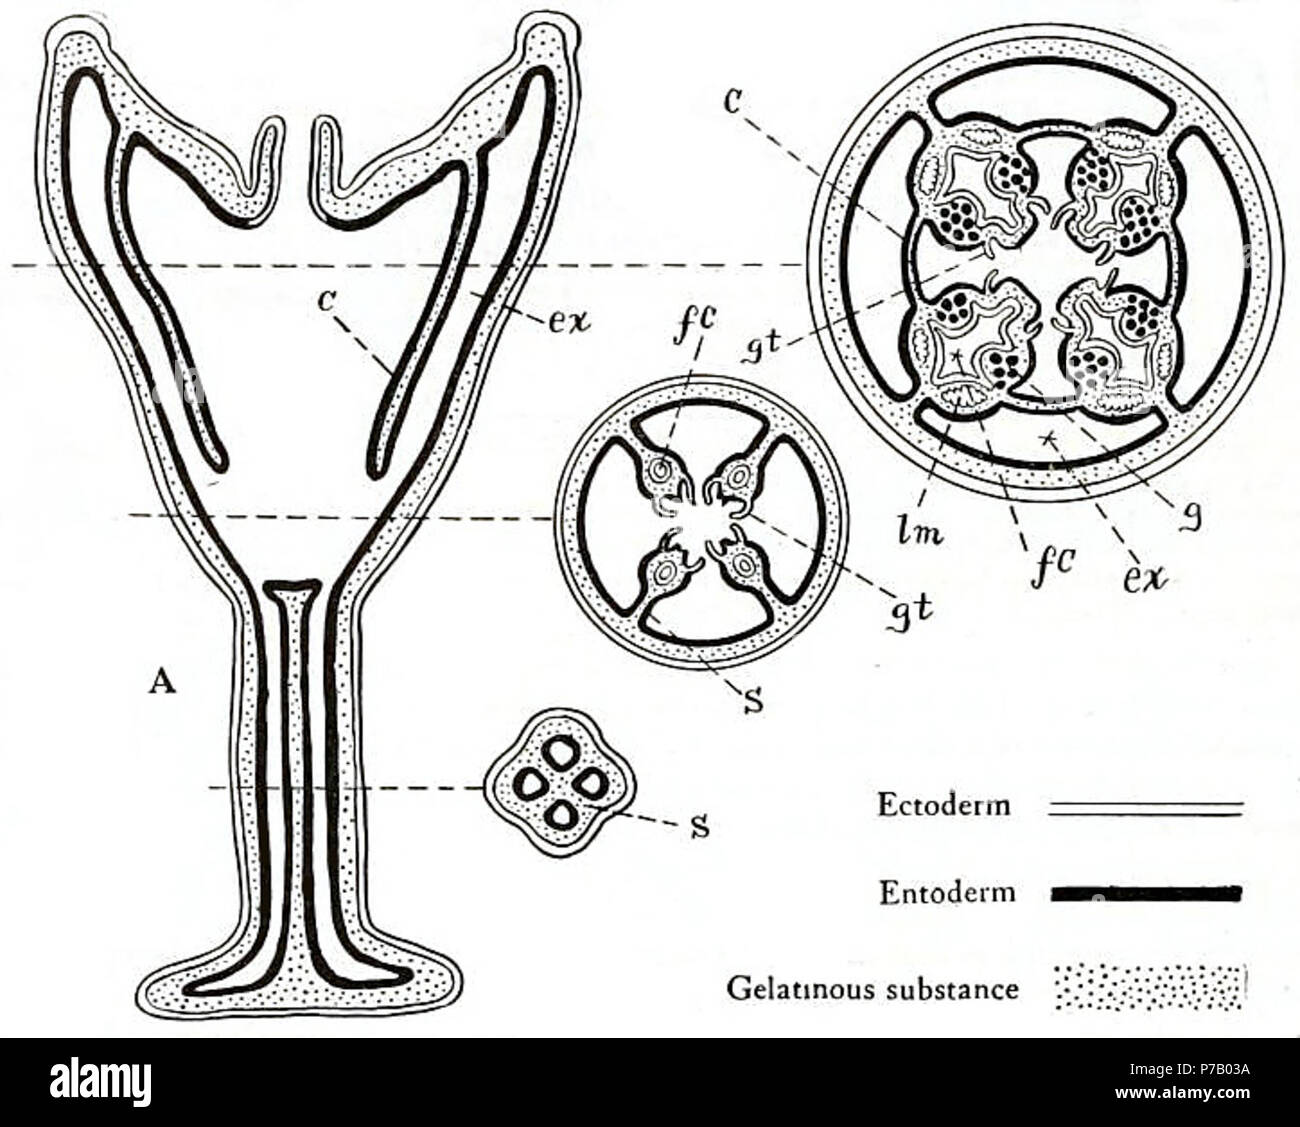 Gastric Pits Stock Photos Gastric Pits Stock Images Alamy